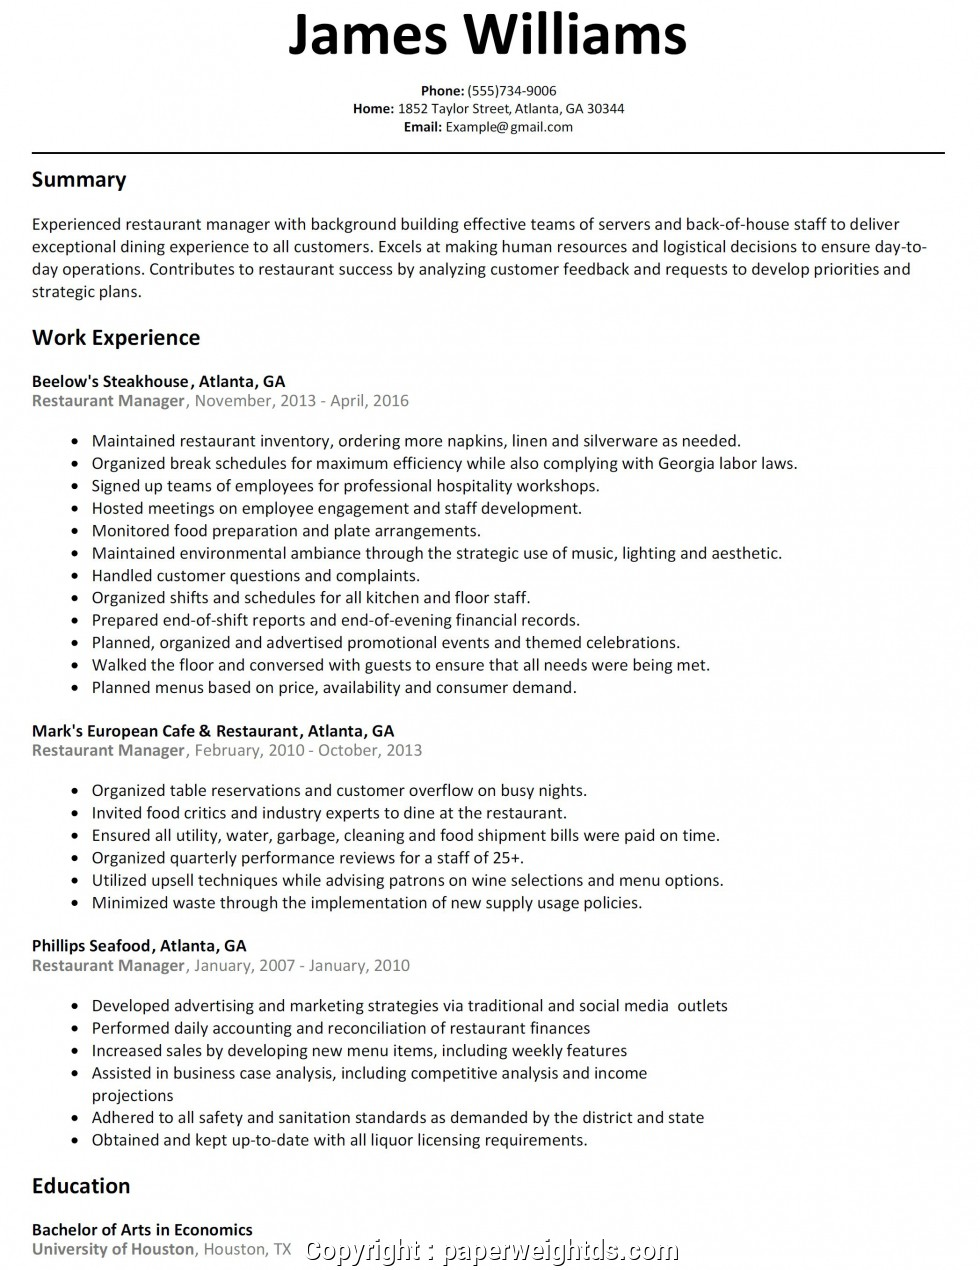 fast food manager resume free templates should education come before experience on fedex Resume Fast Food Manager Resume